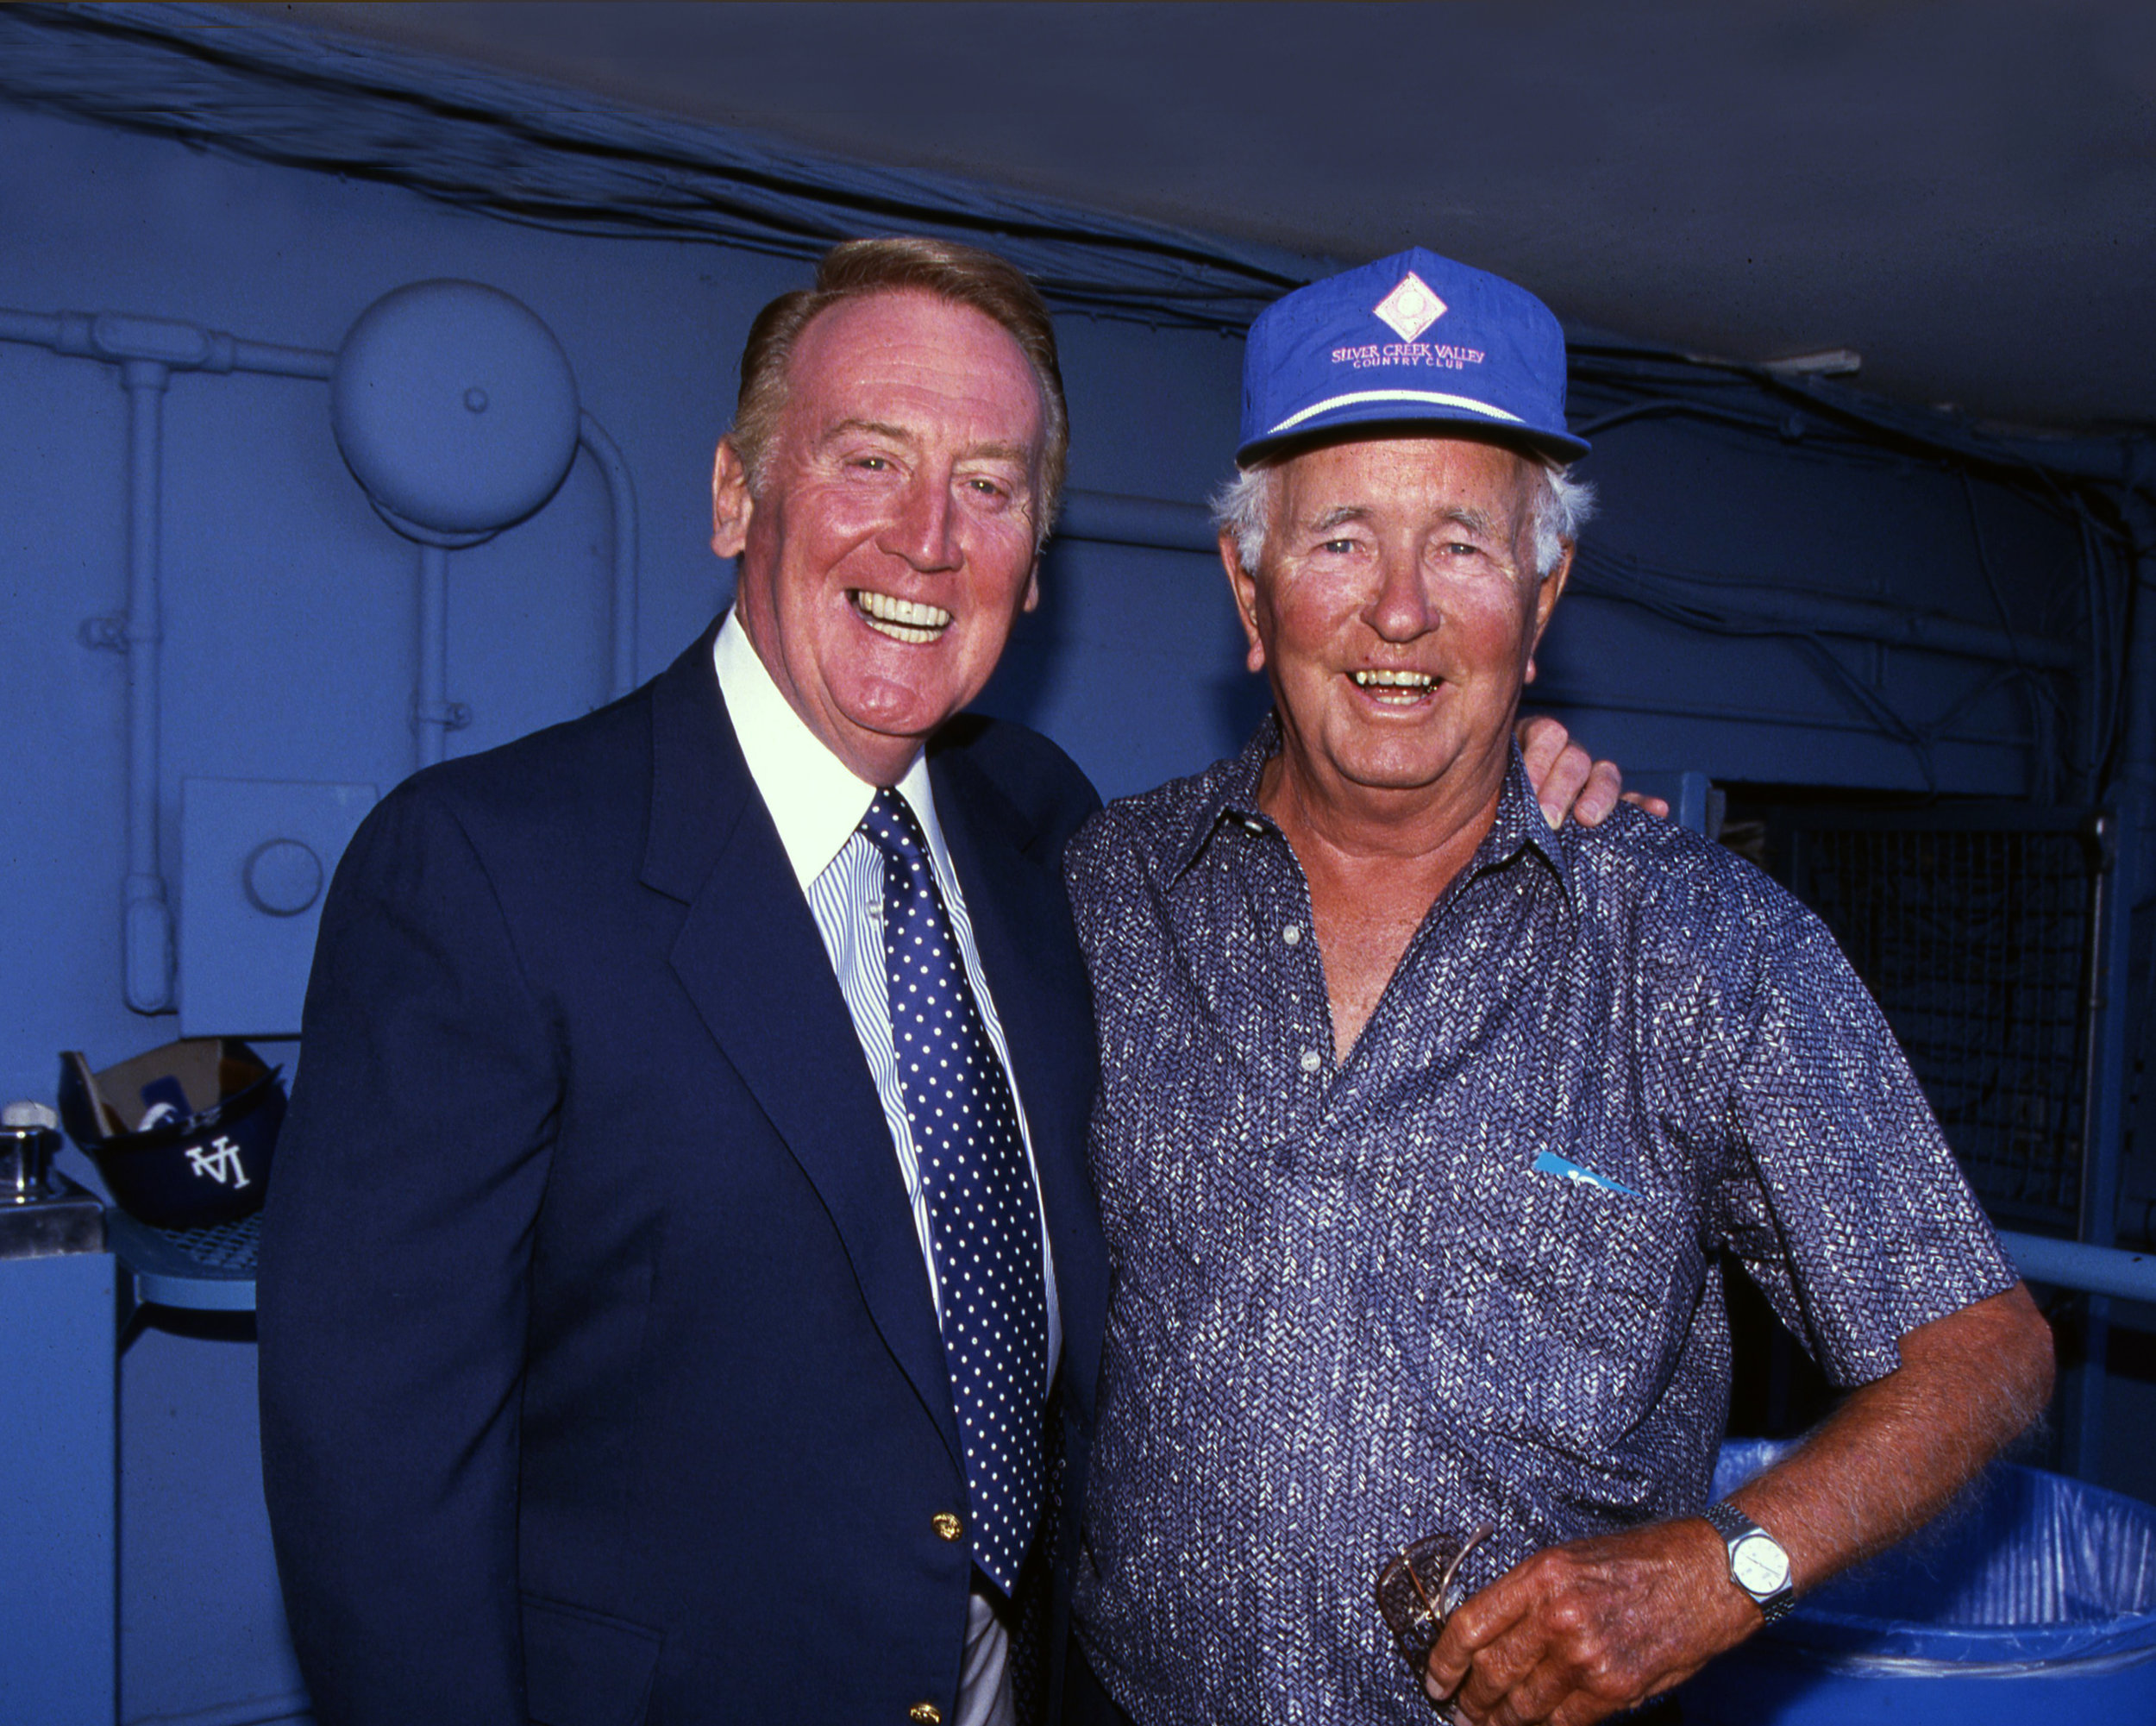 vin scully and jerry doggett_511.jpg